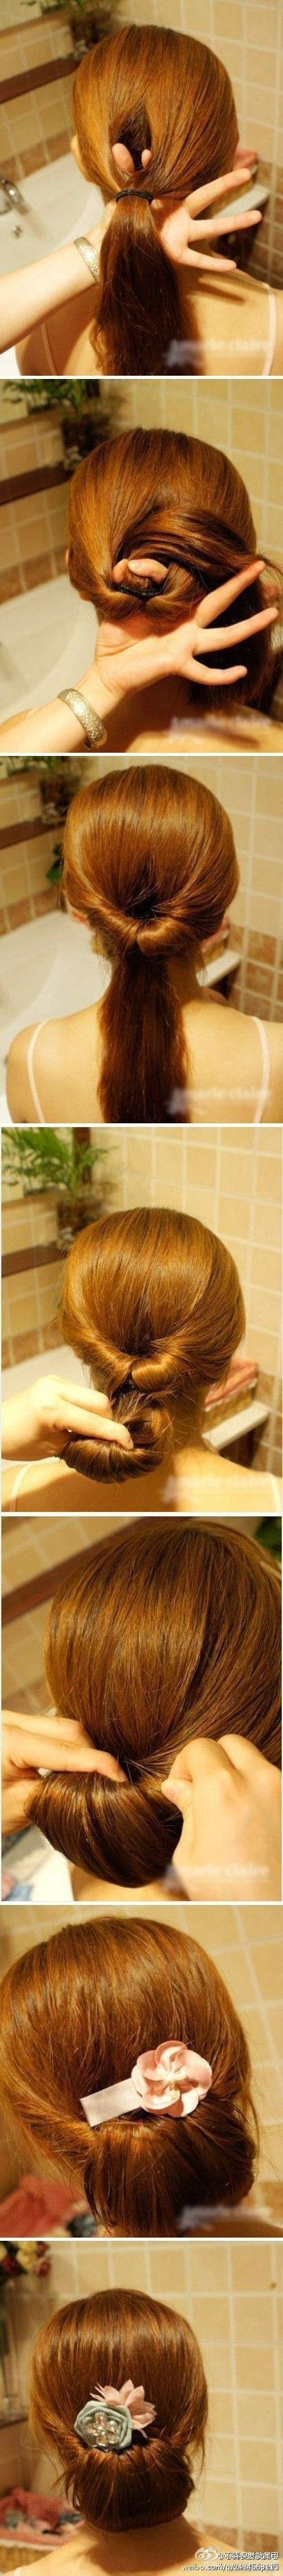 pretty: Hair Ideas, Wedding Hair, Long Hair, Hairstyle, Hair Style, Ponies Tail, Updo, Hair Buns, Low Buns